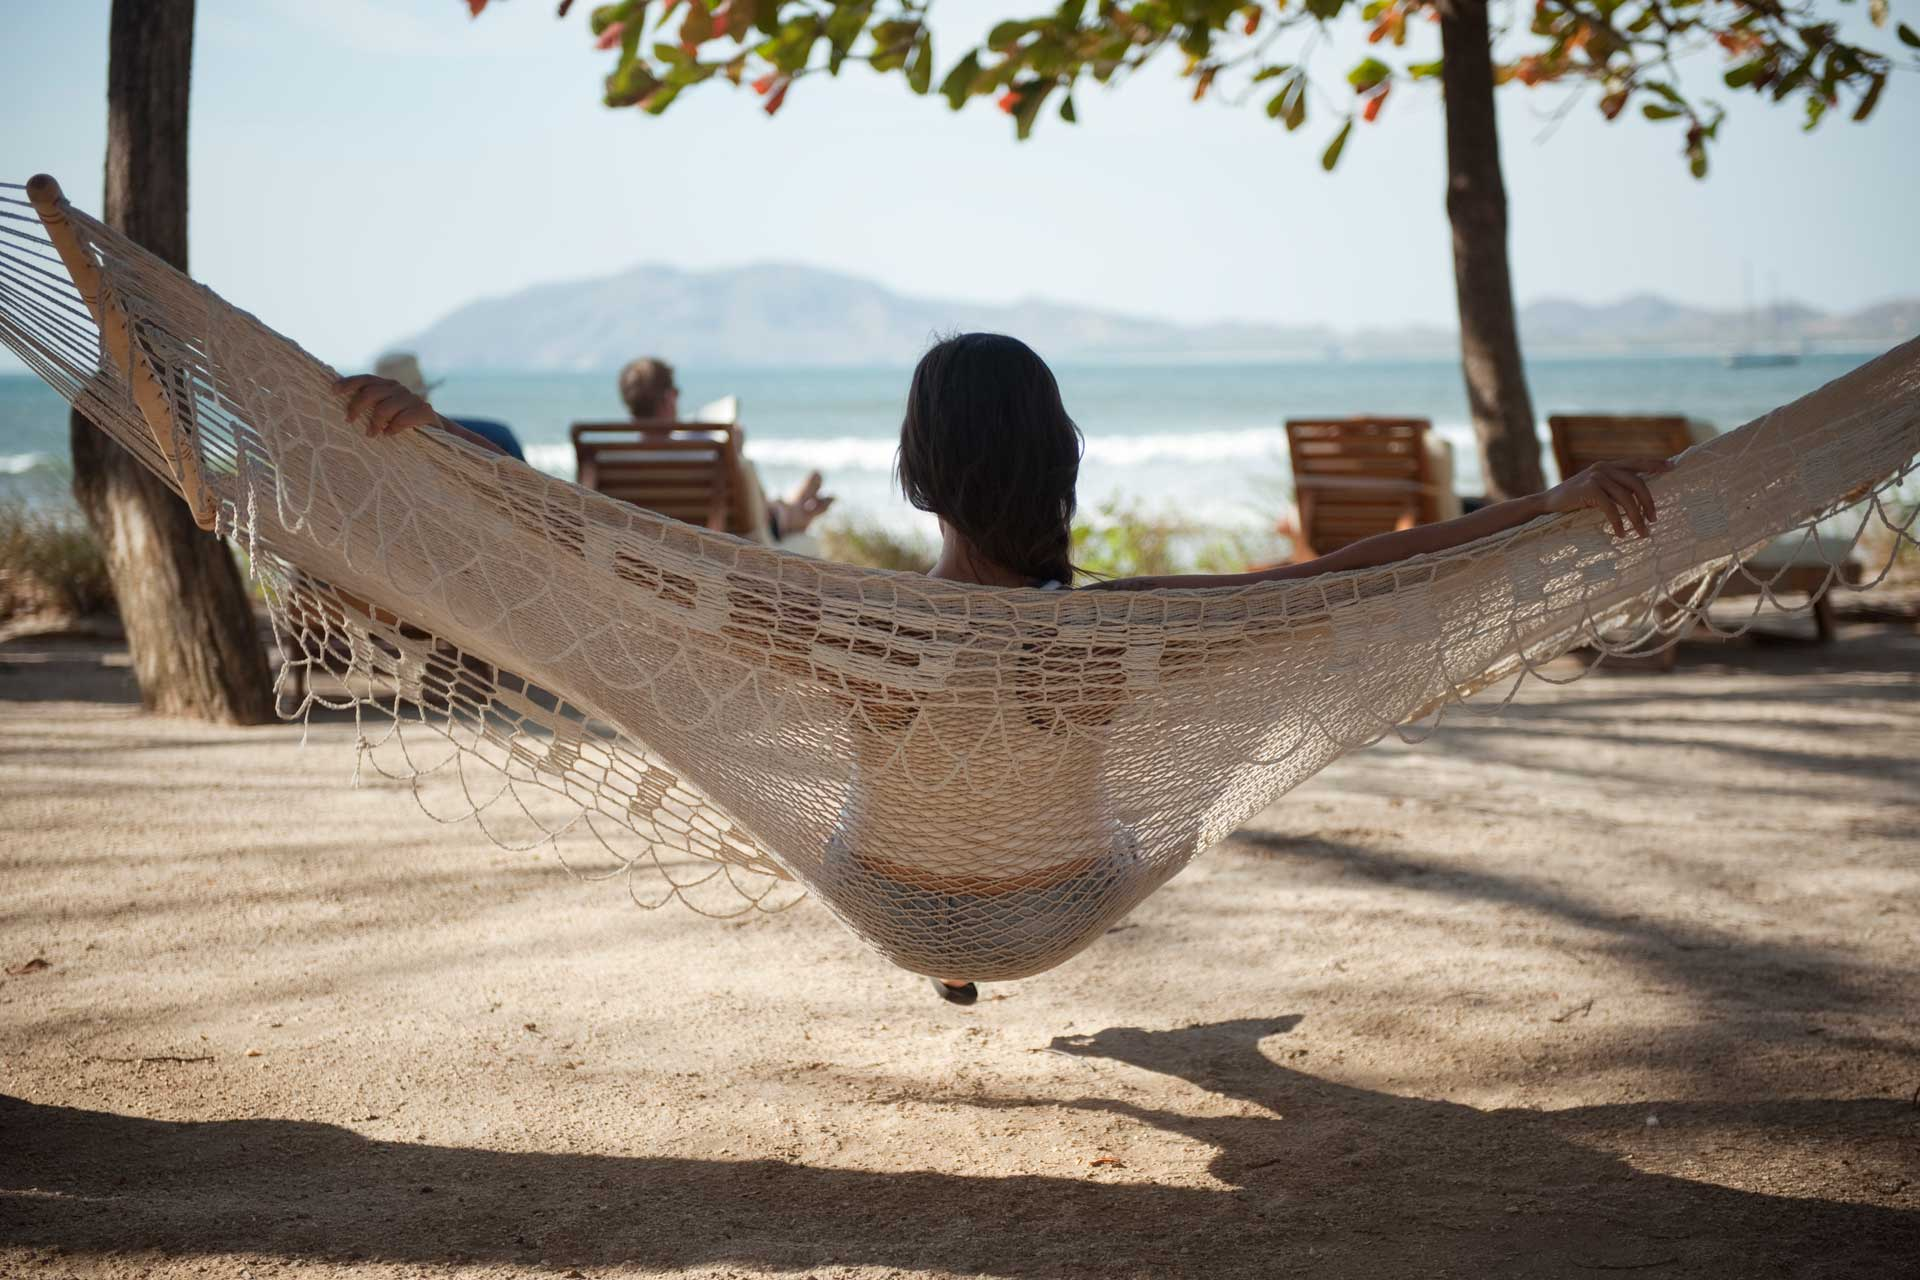 Relax on the beach Costa Rica Specialist holiday